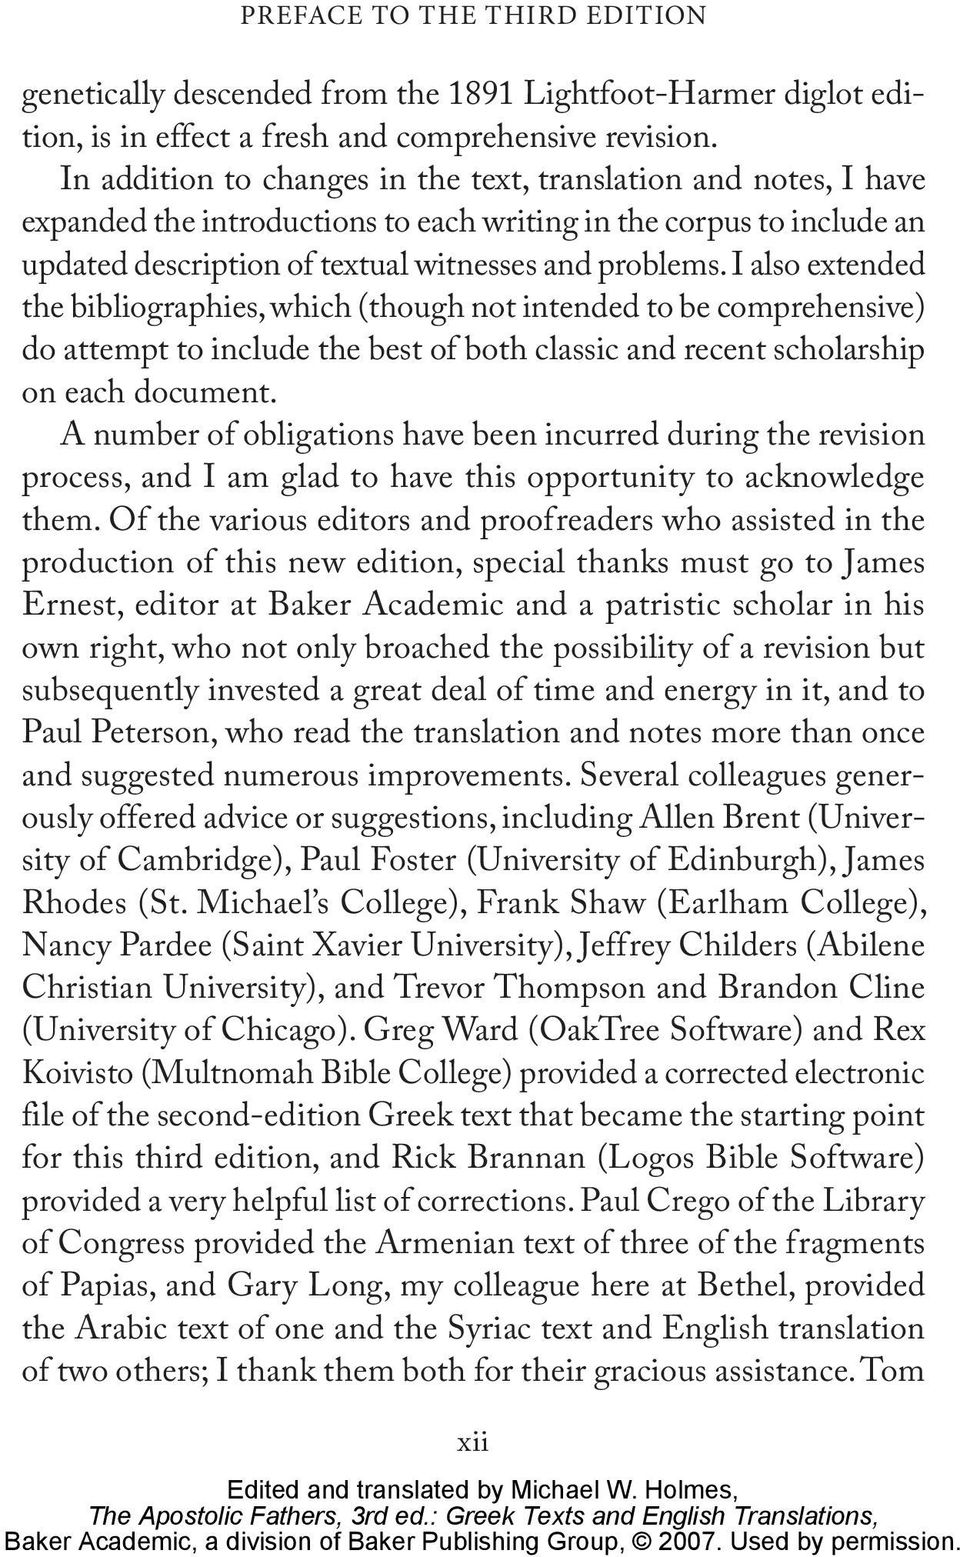 I also extended the bibliographies, which (though not intended to be comprehensive) do attempt to include the best of both classic and recent scholarship on each document.